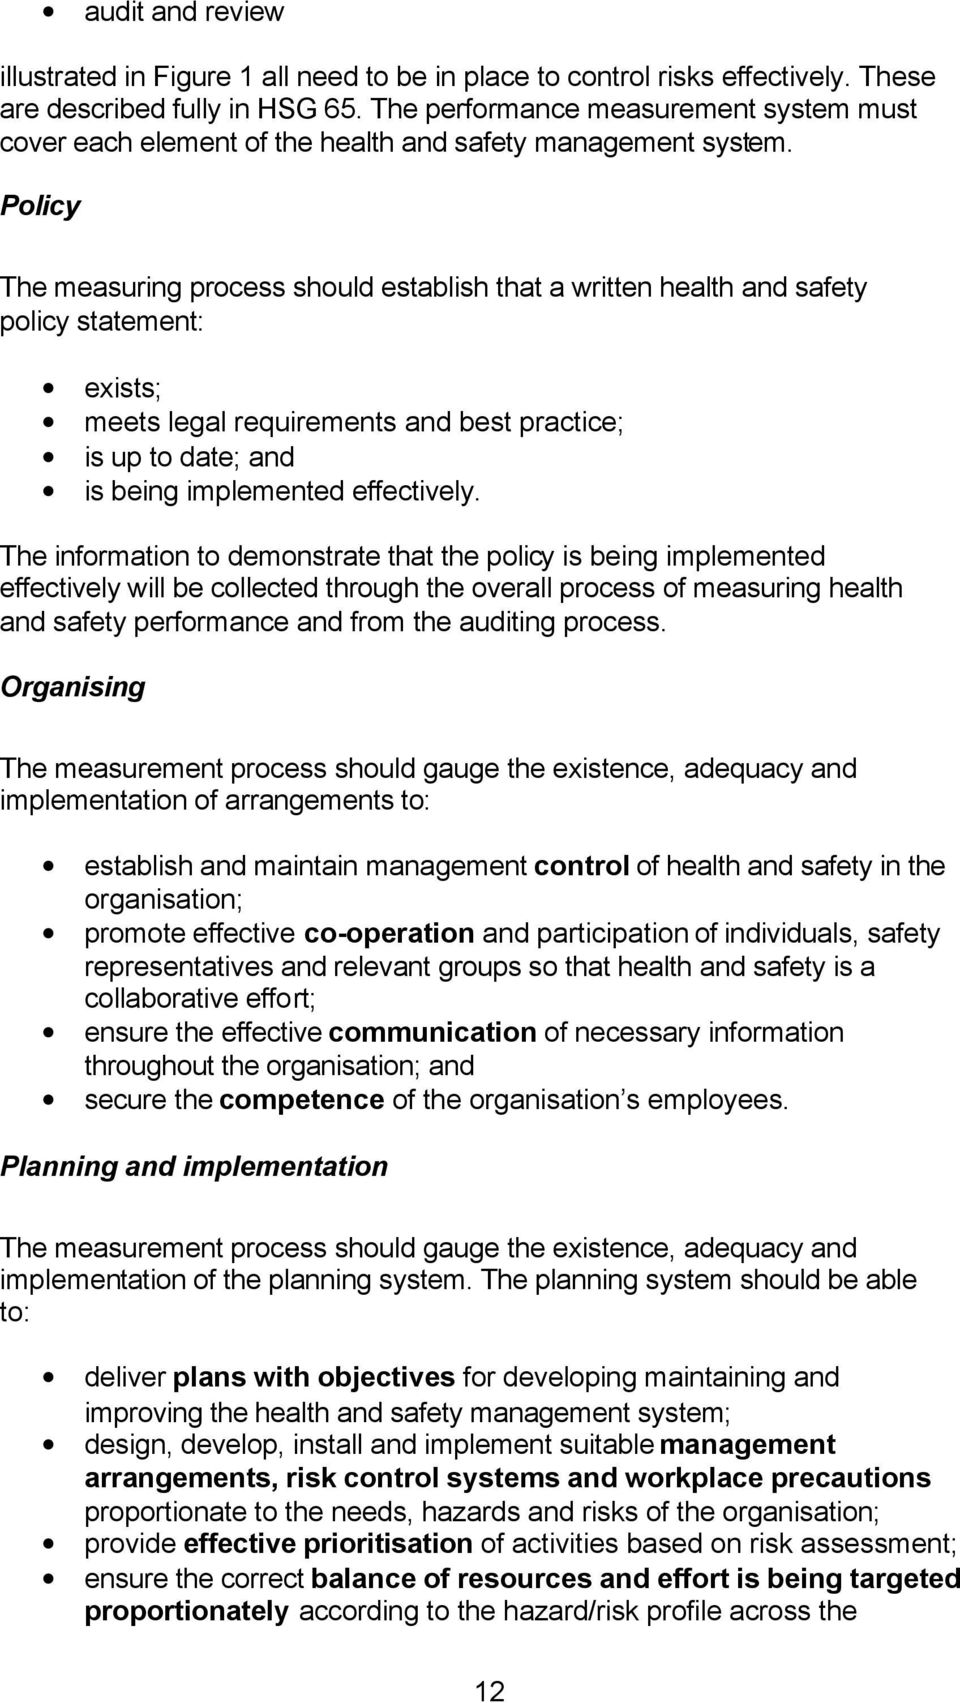 Policy The measuring process should establish that a written health and safety policy statement: exists; meets legal requirements and best practice; is up to date; and is being implemented